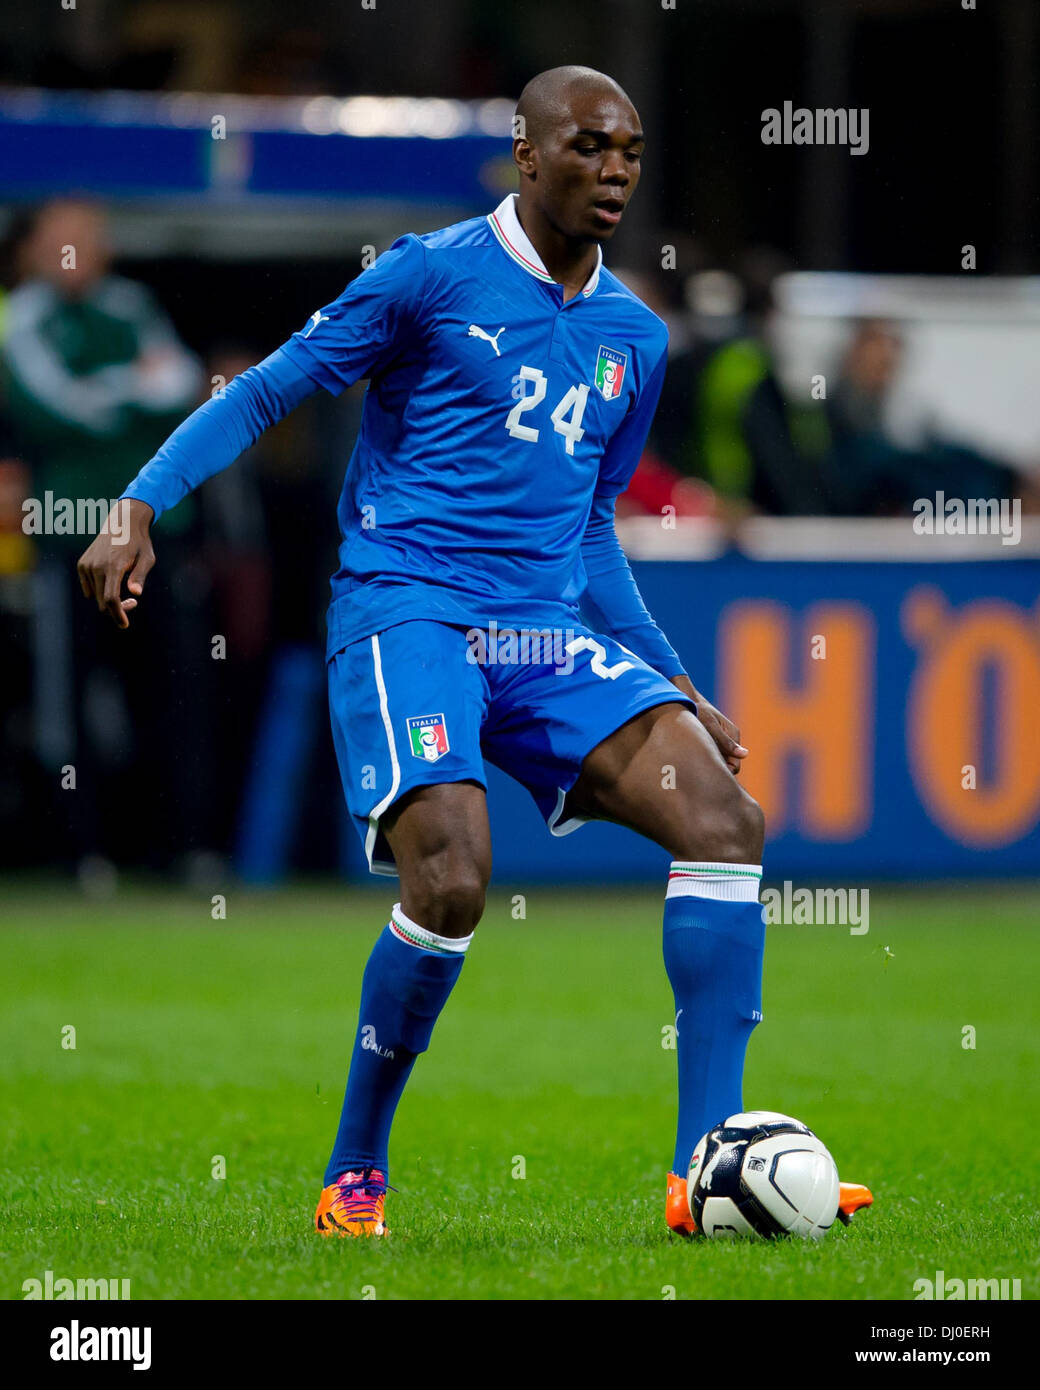 Milan, Italy. 15th Nov, 2013. Italy's Angelo Ogbonna in action during the friendly soccer match between Italy and Stock Photo